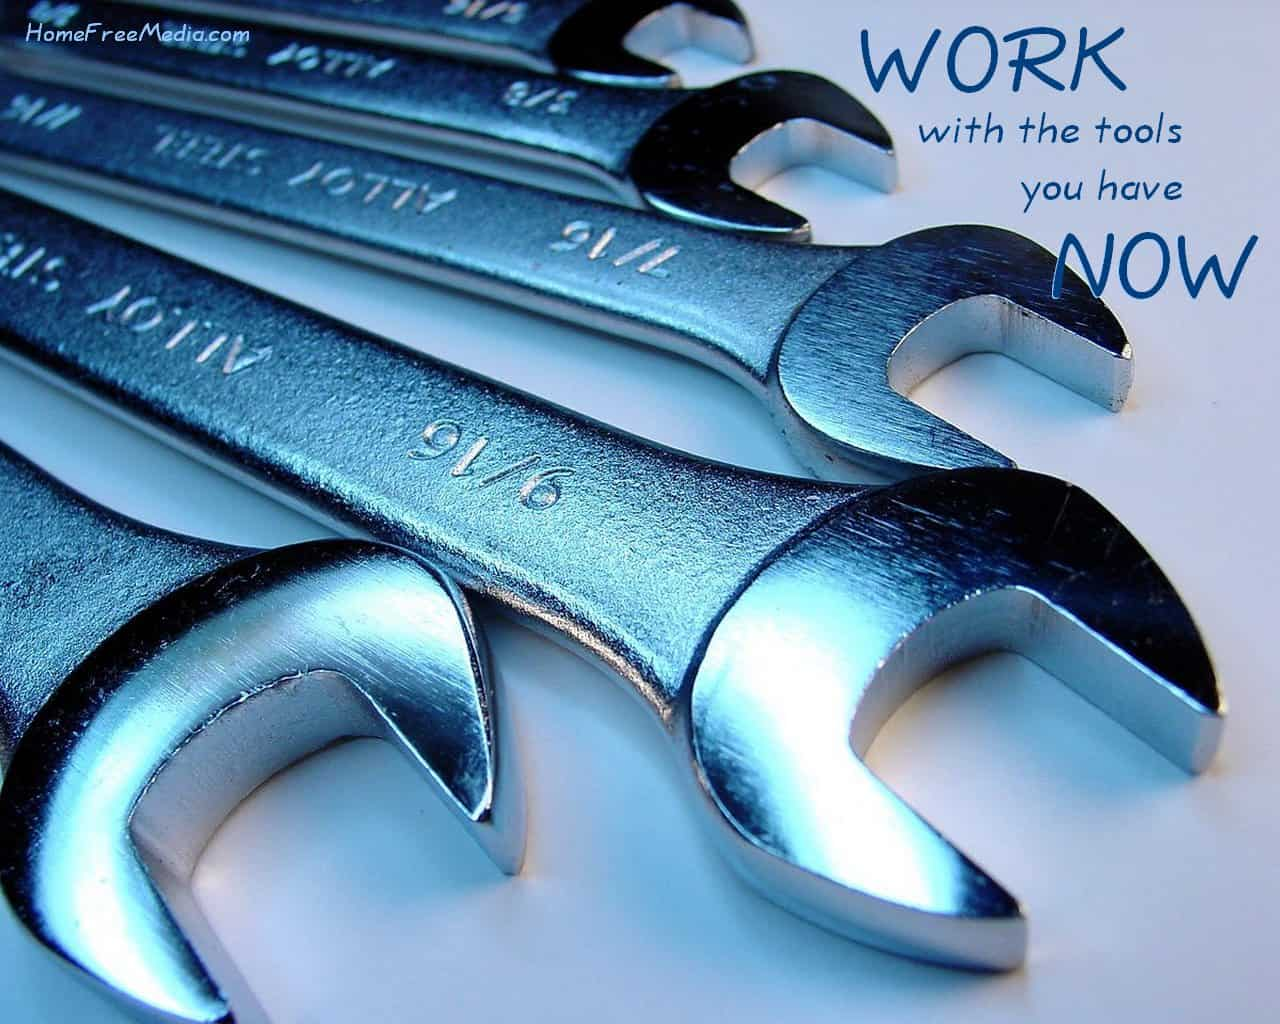 Tools – Work with What You Have Now